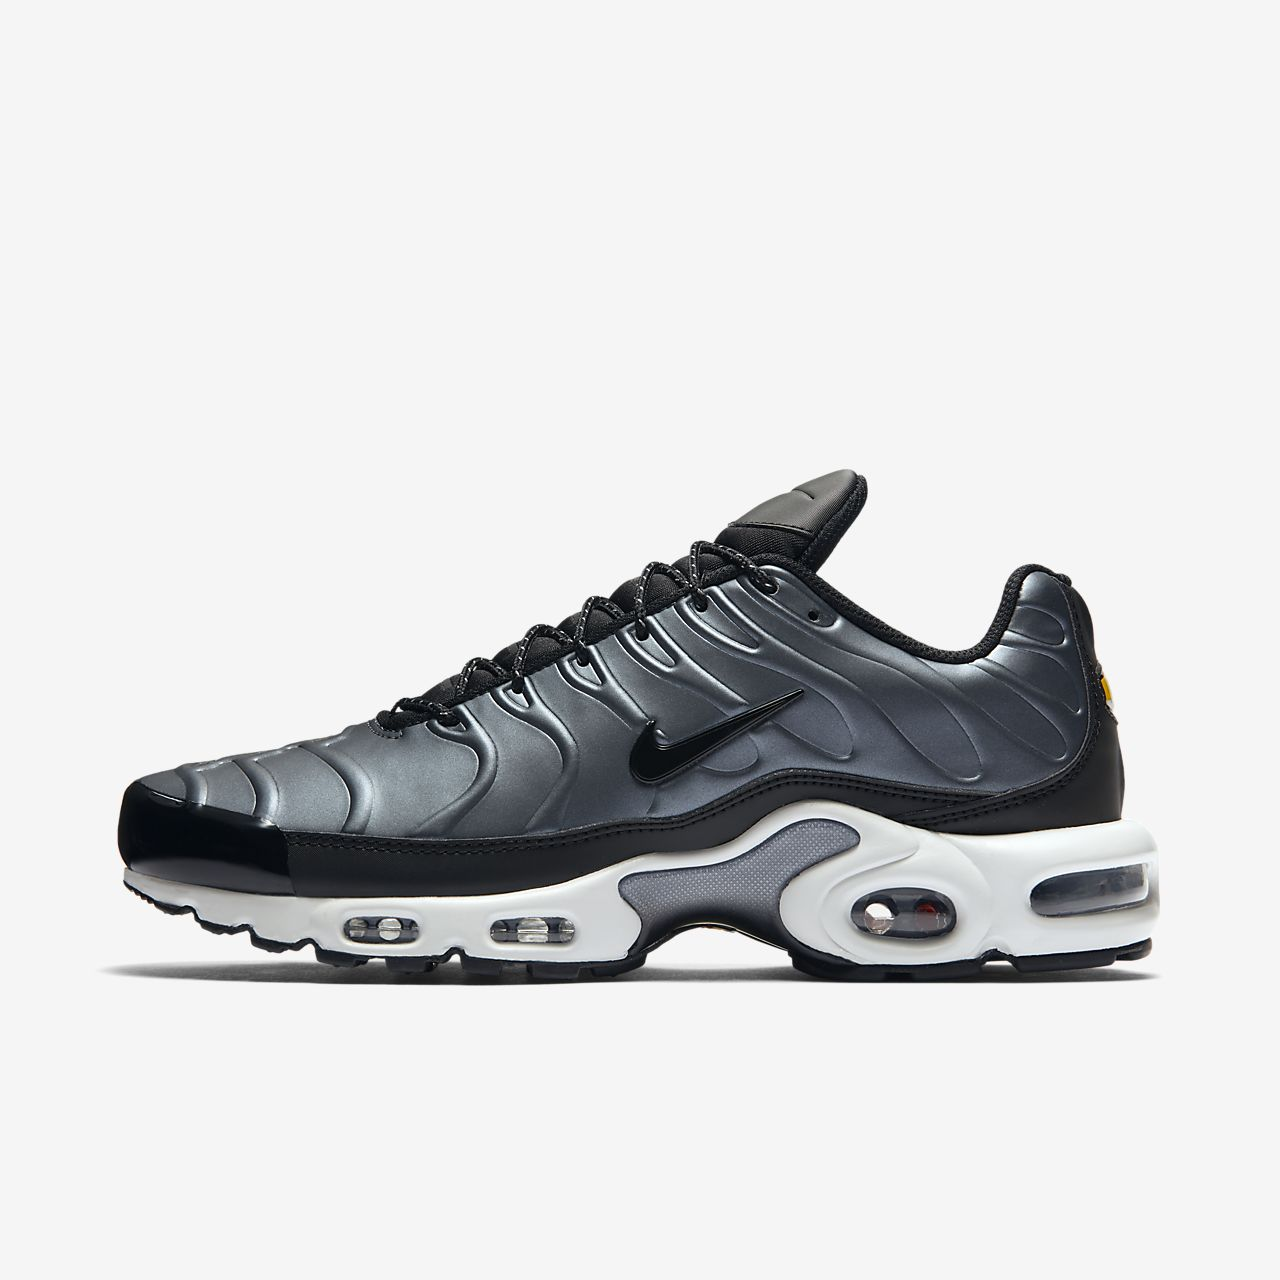 best service 59cfb 71c7f Nike Air Max Plus SE